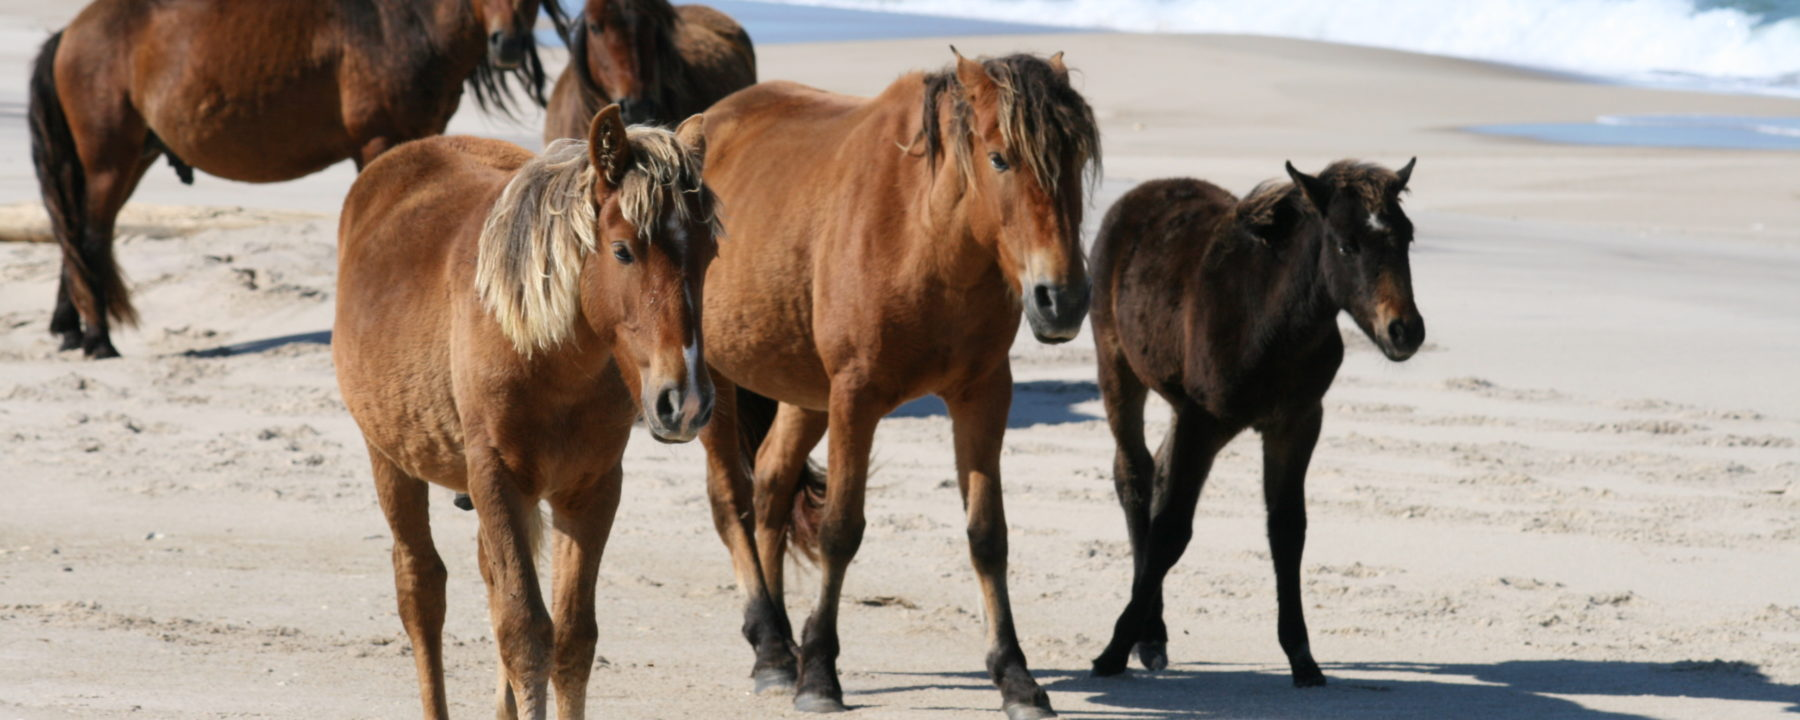 One Ocean Expeditions stops at Sable Island to see its wild horses.